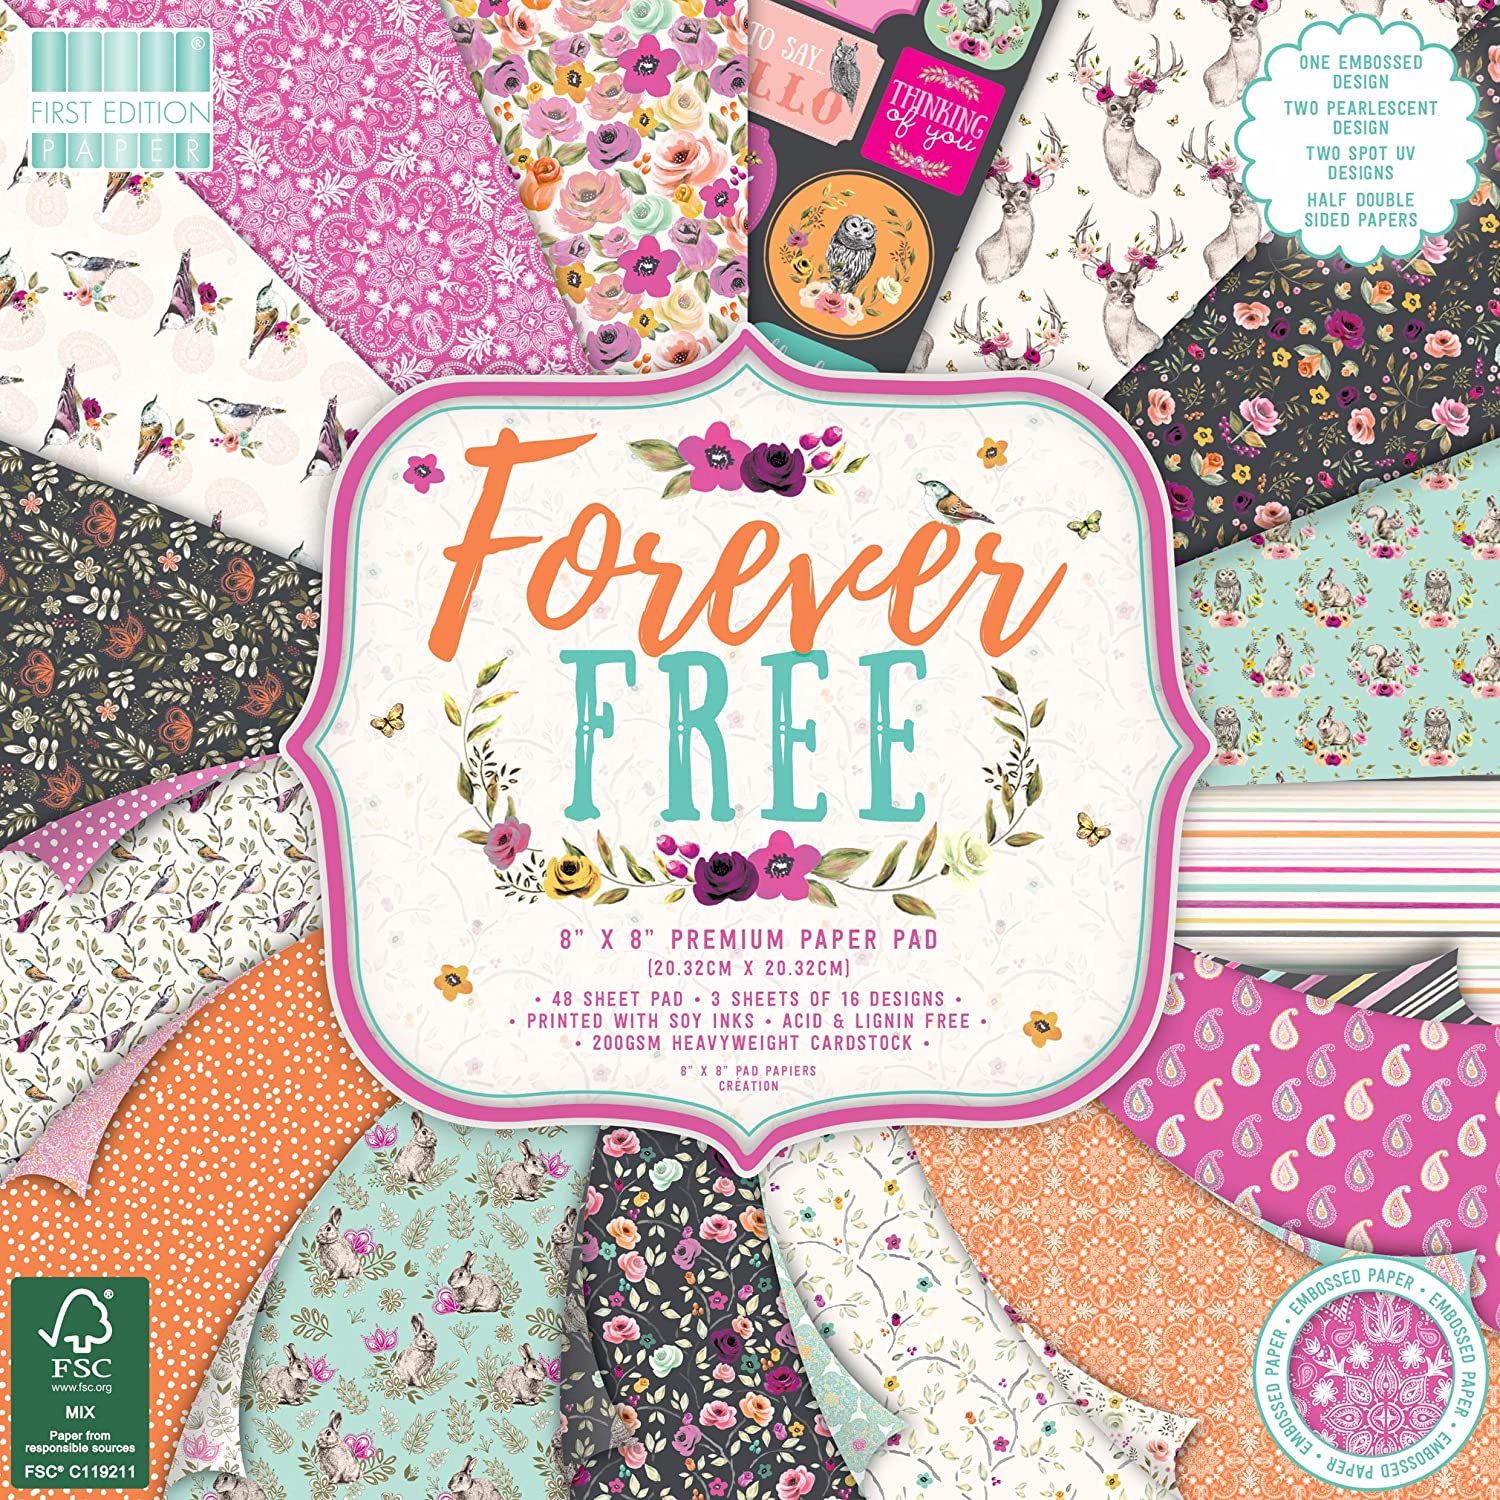 FSC First Edition Forever Free Premium Paper Pad 12x12 48 Sheets